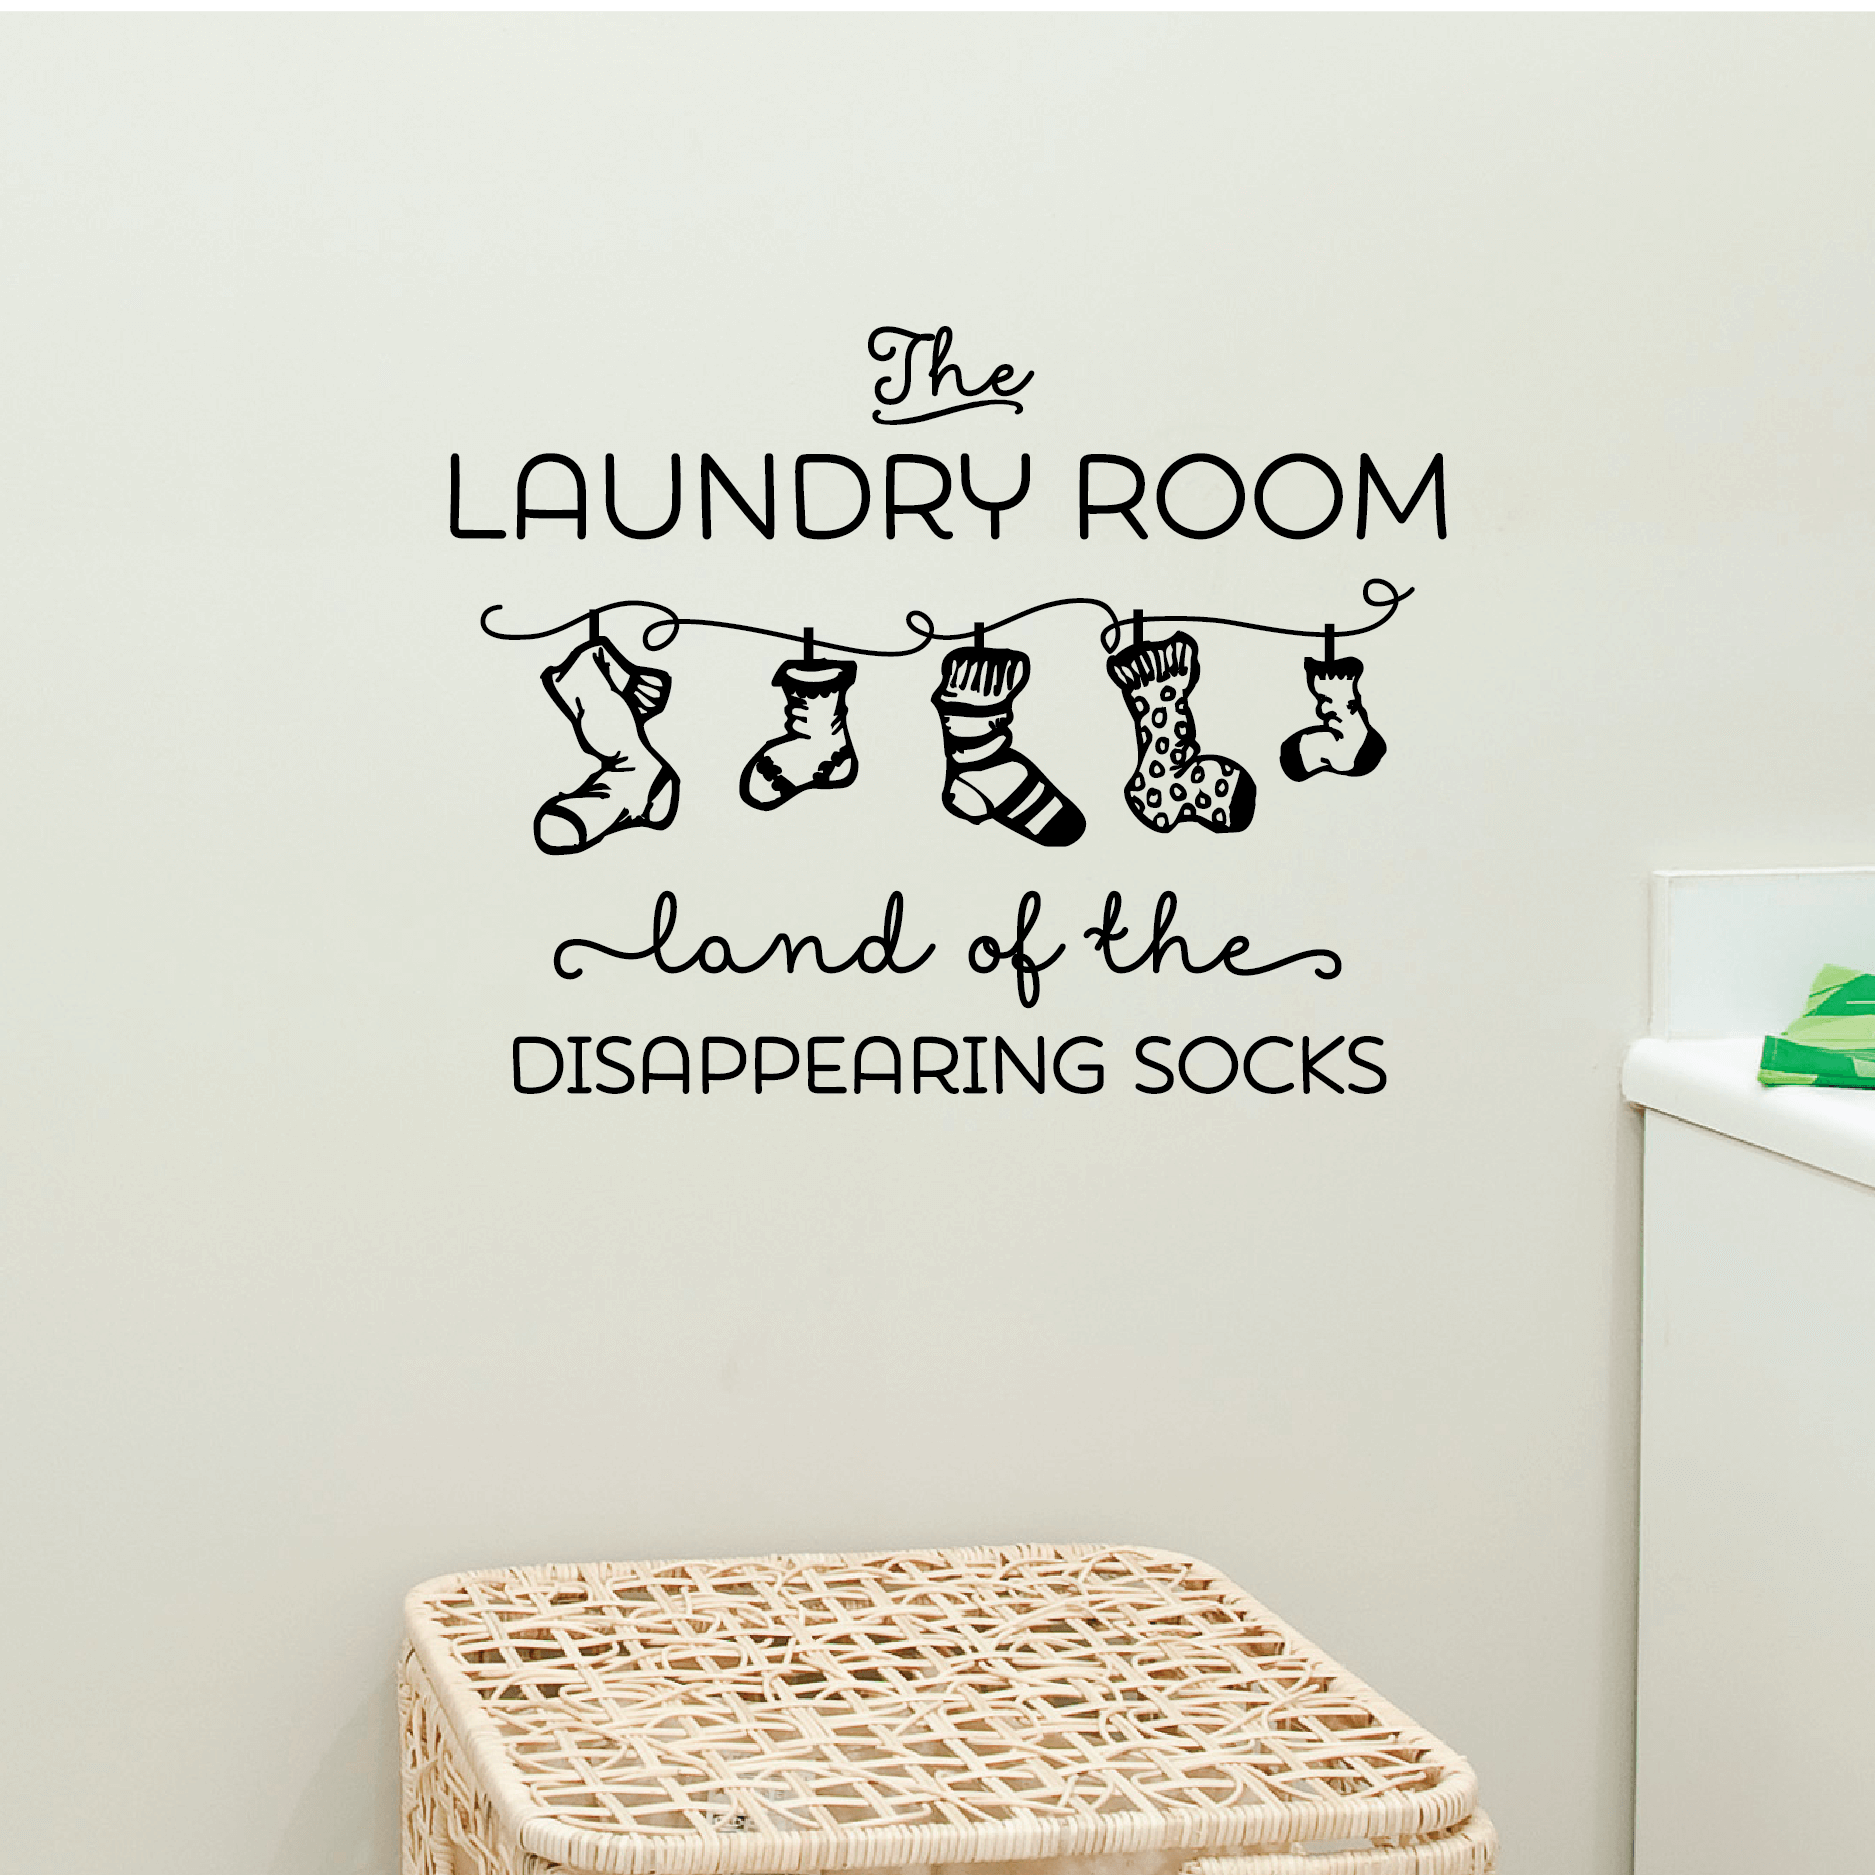 Laundry Room Wall Appliques Extraordinary The Laundry Room Wall Sticker Decals  Bathroom  Home Decor Decorating Design